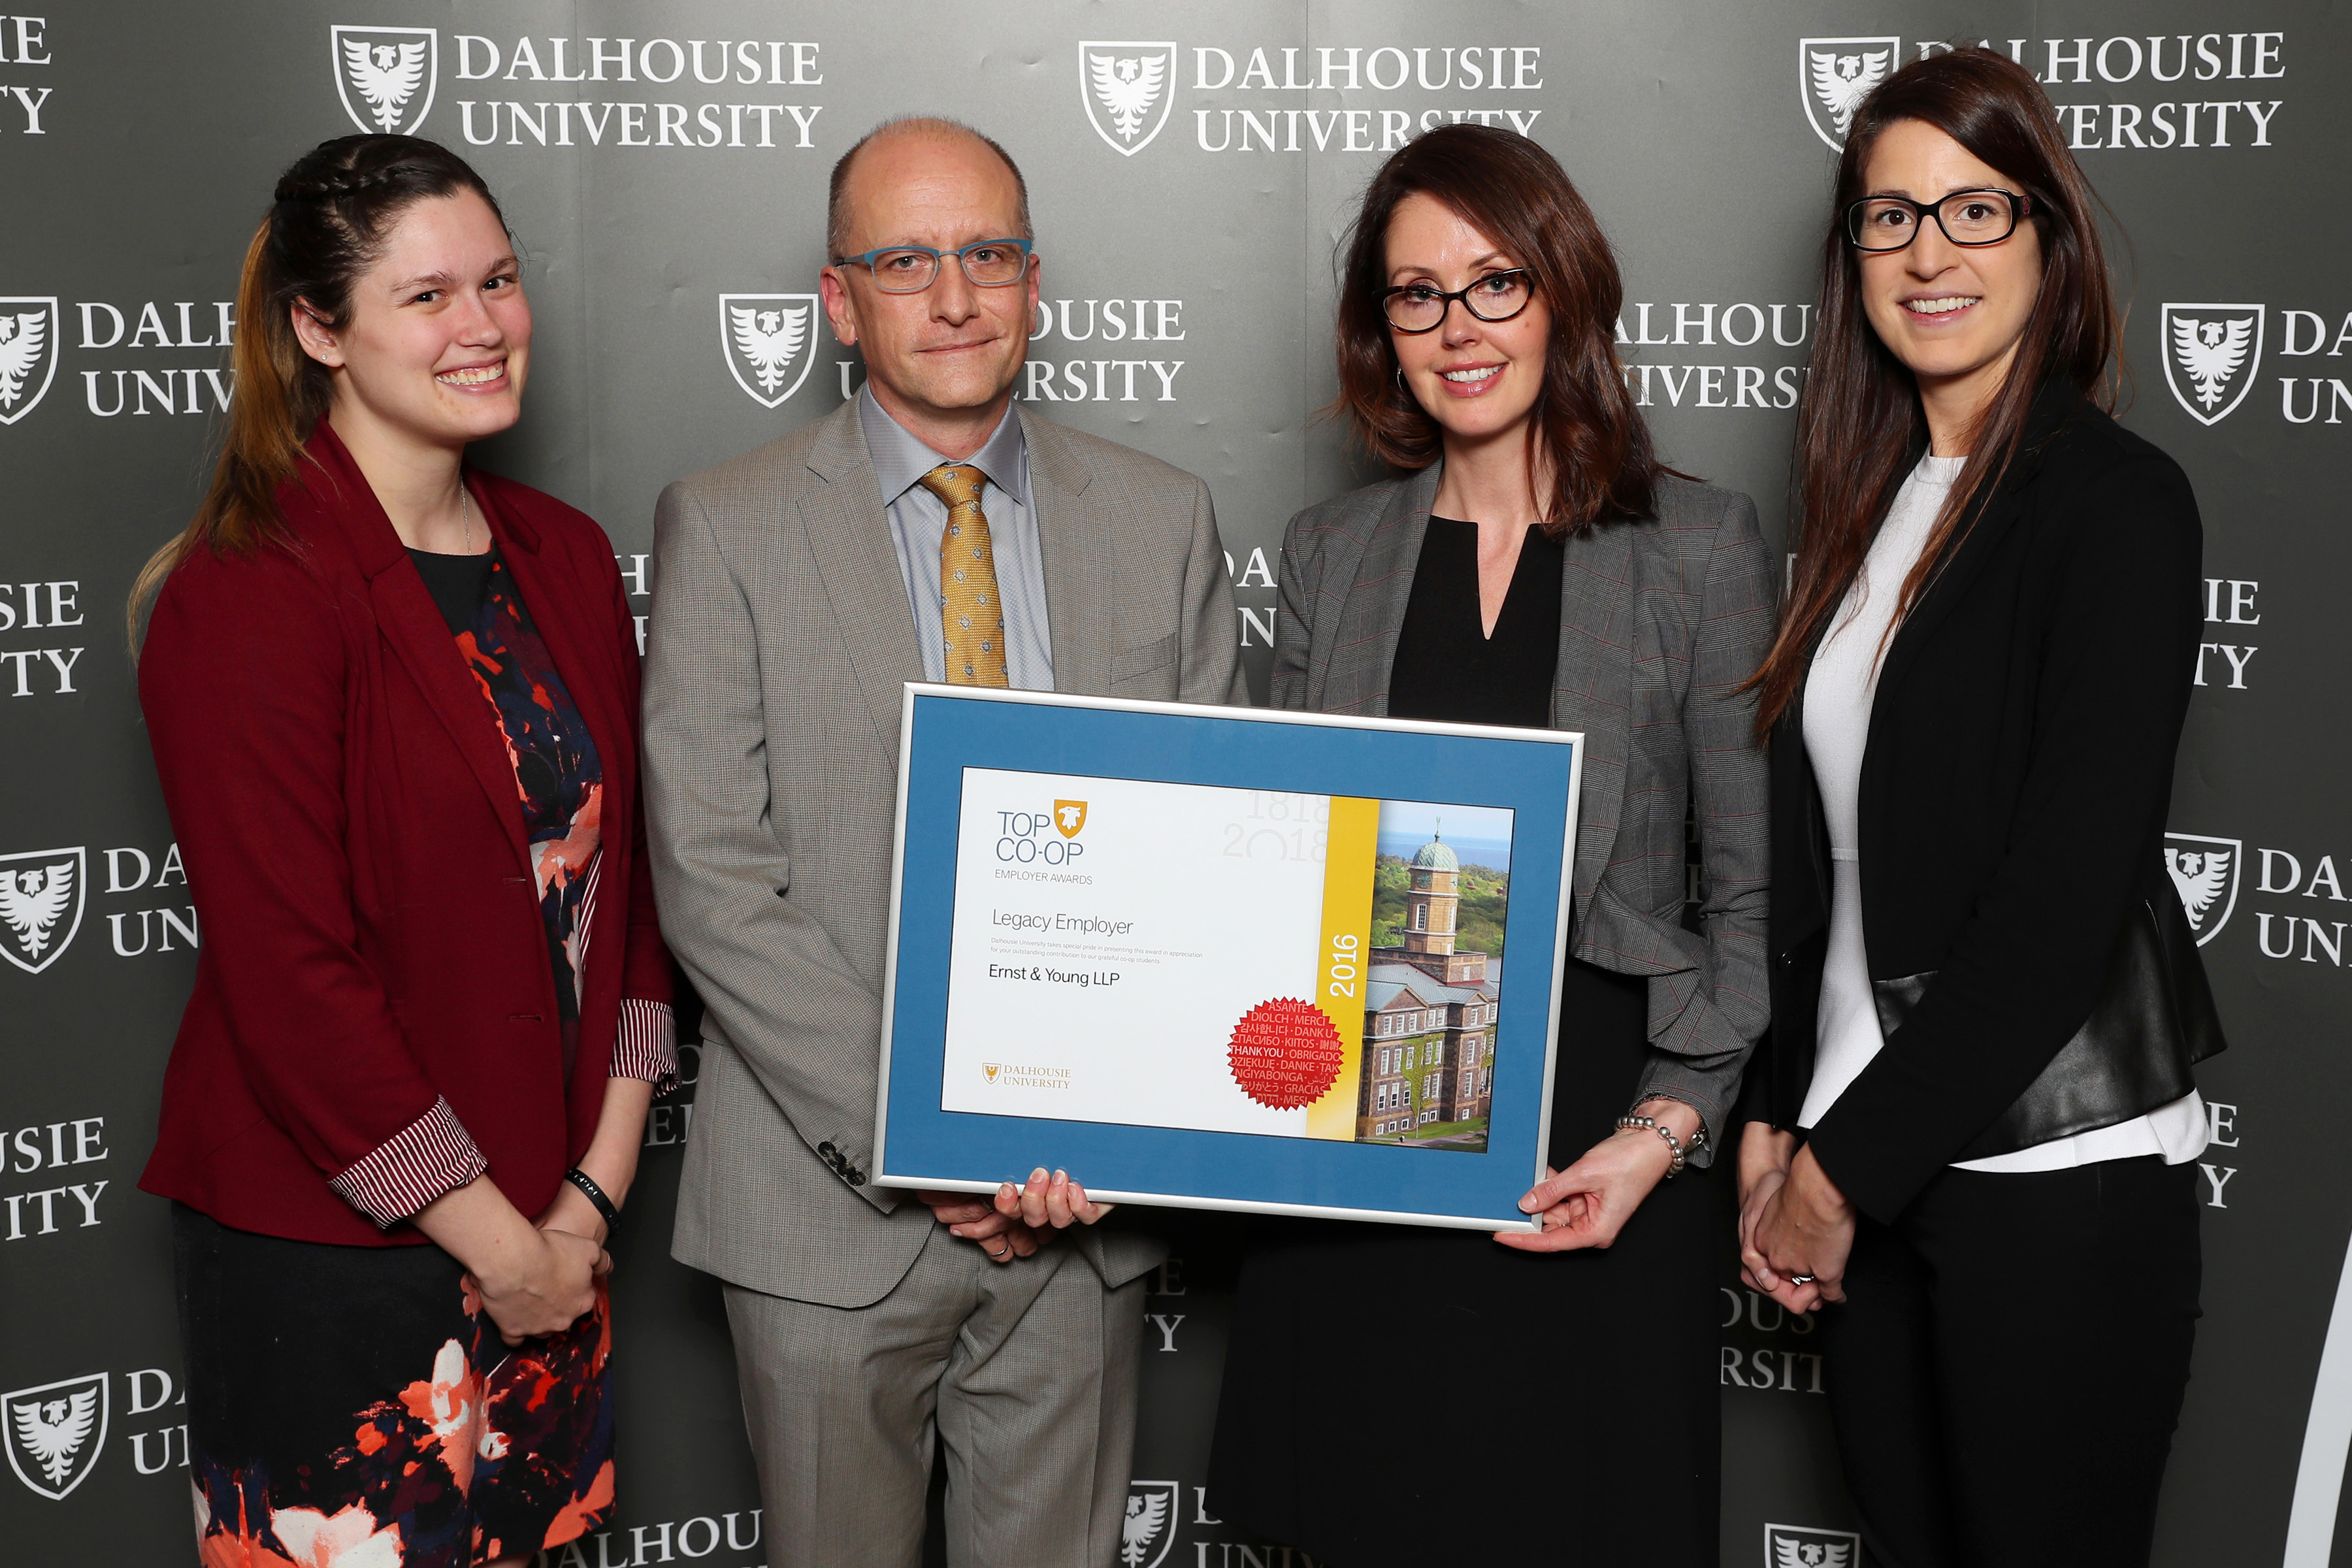 Dalhousie University celebrates excellence in co-operative education